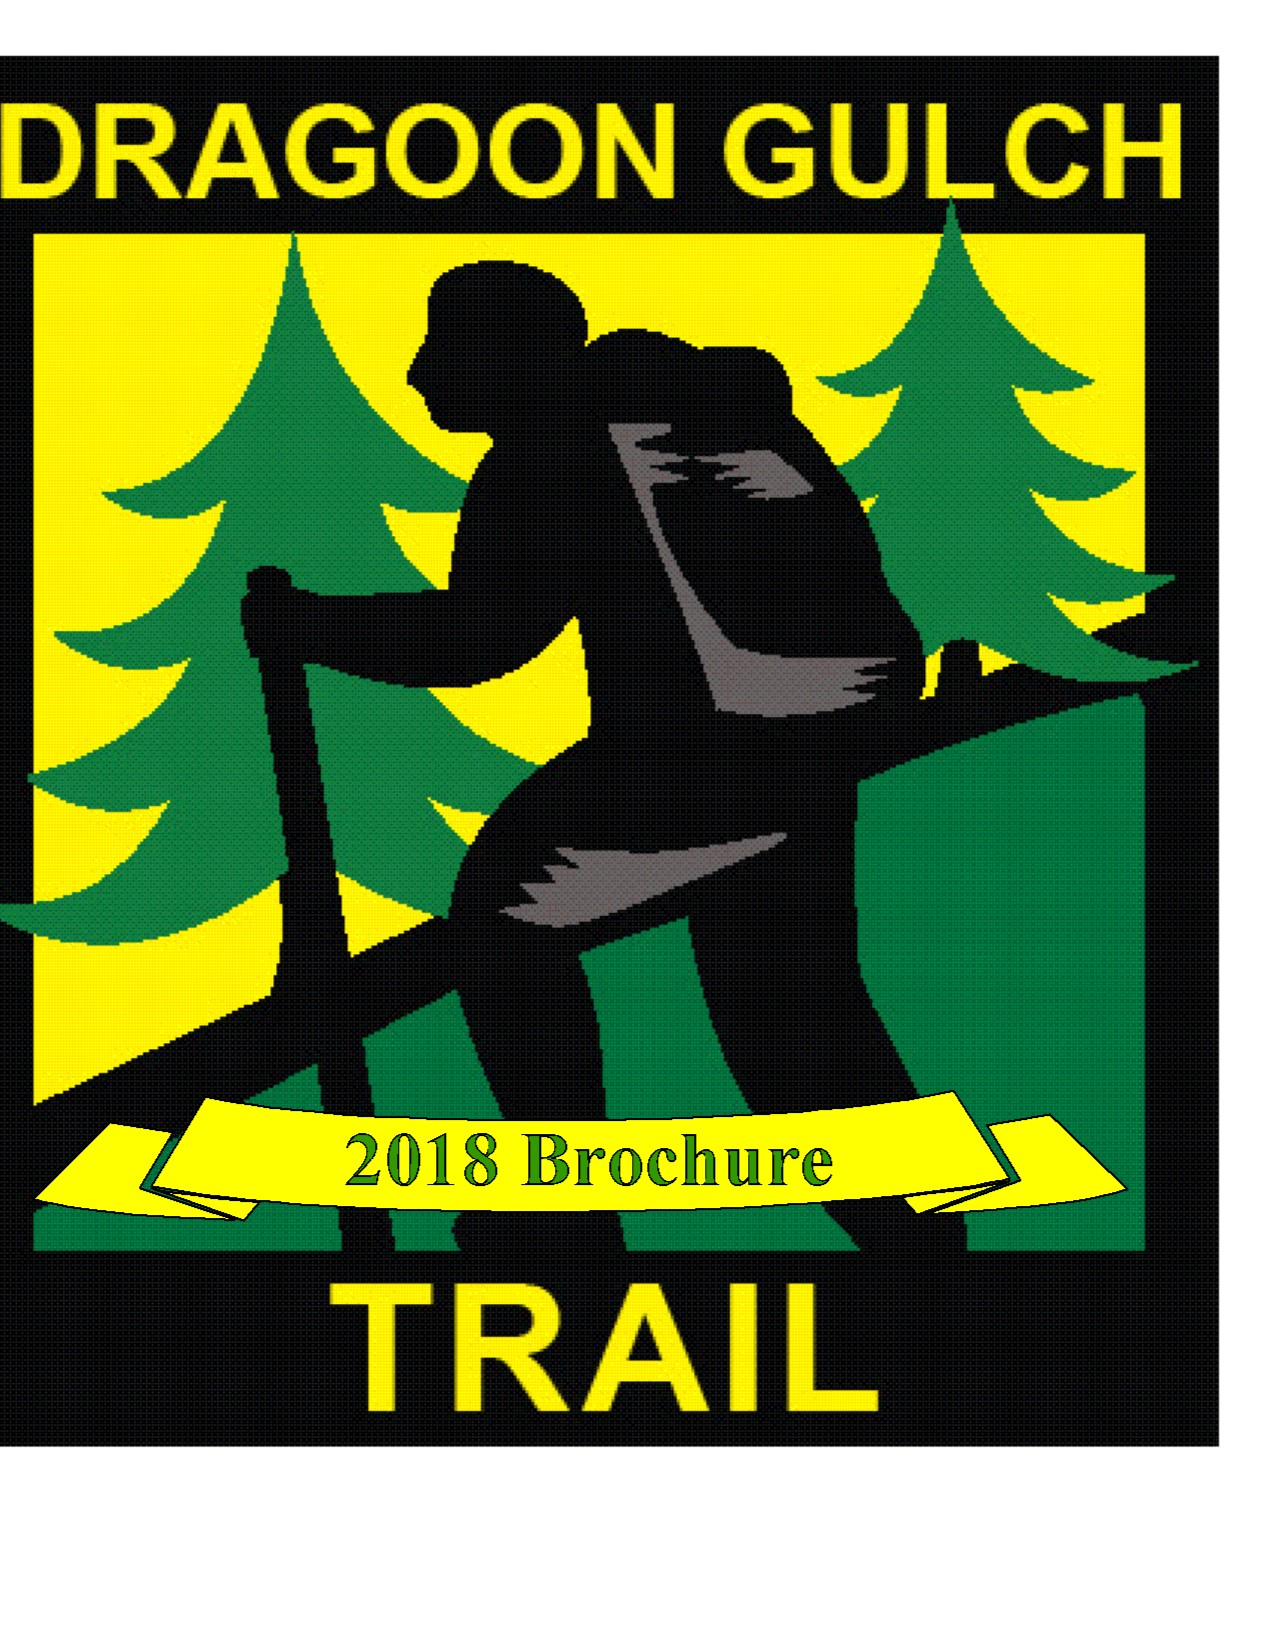 Dragoon Trail 2018 brochure with logo of trail